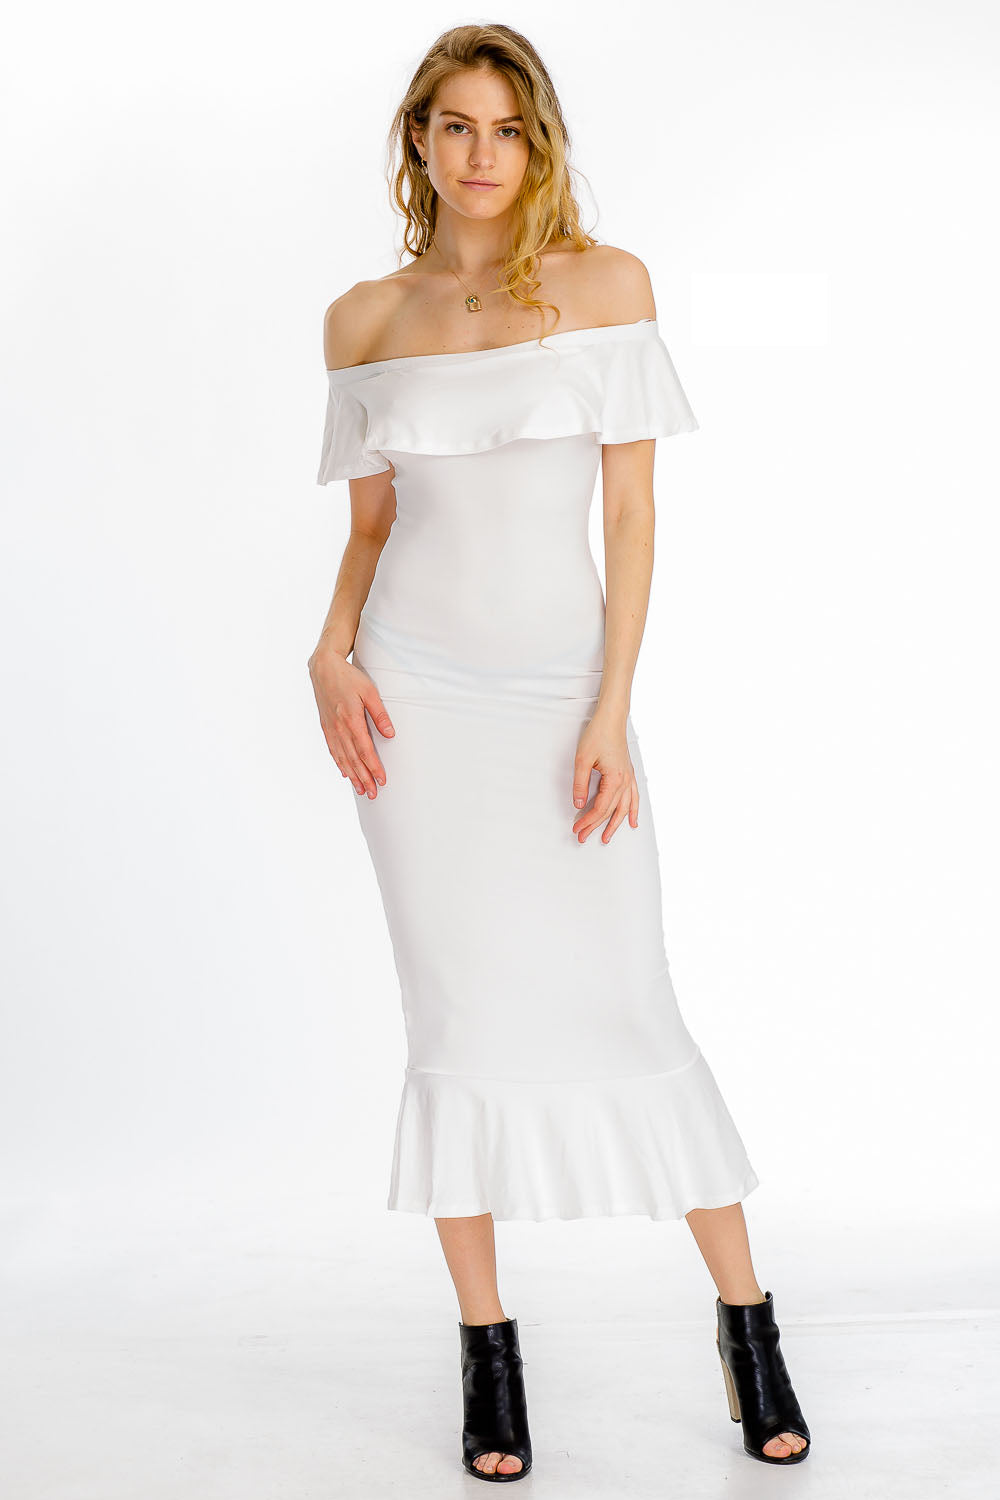 Dress - BD2154 - Capella Apparel